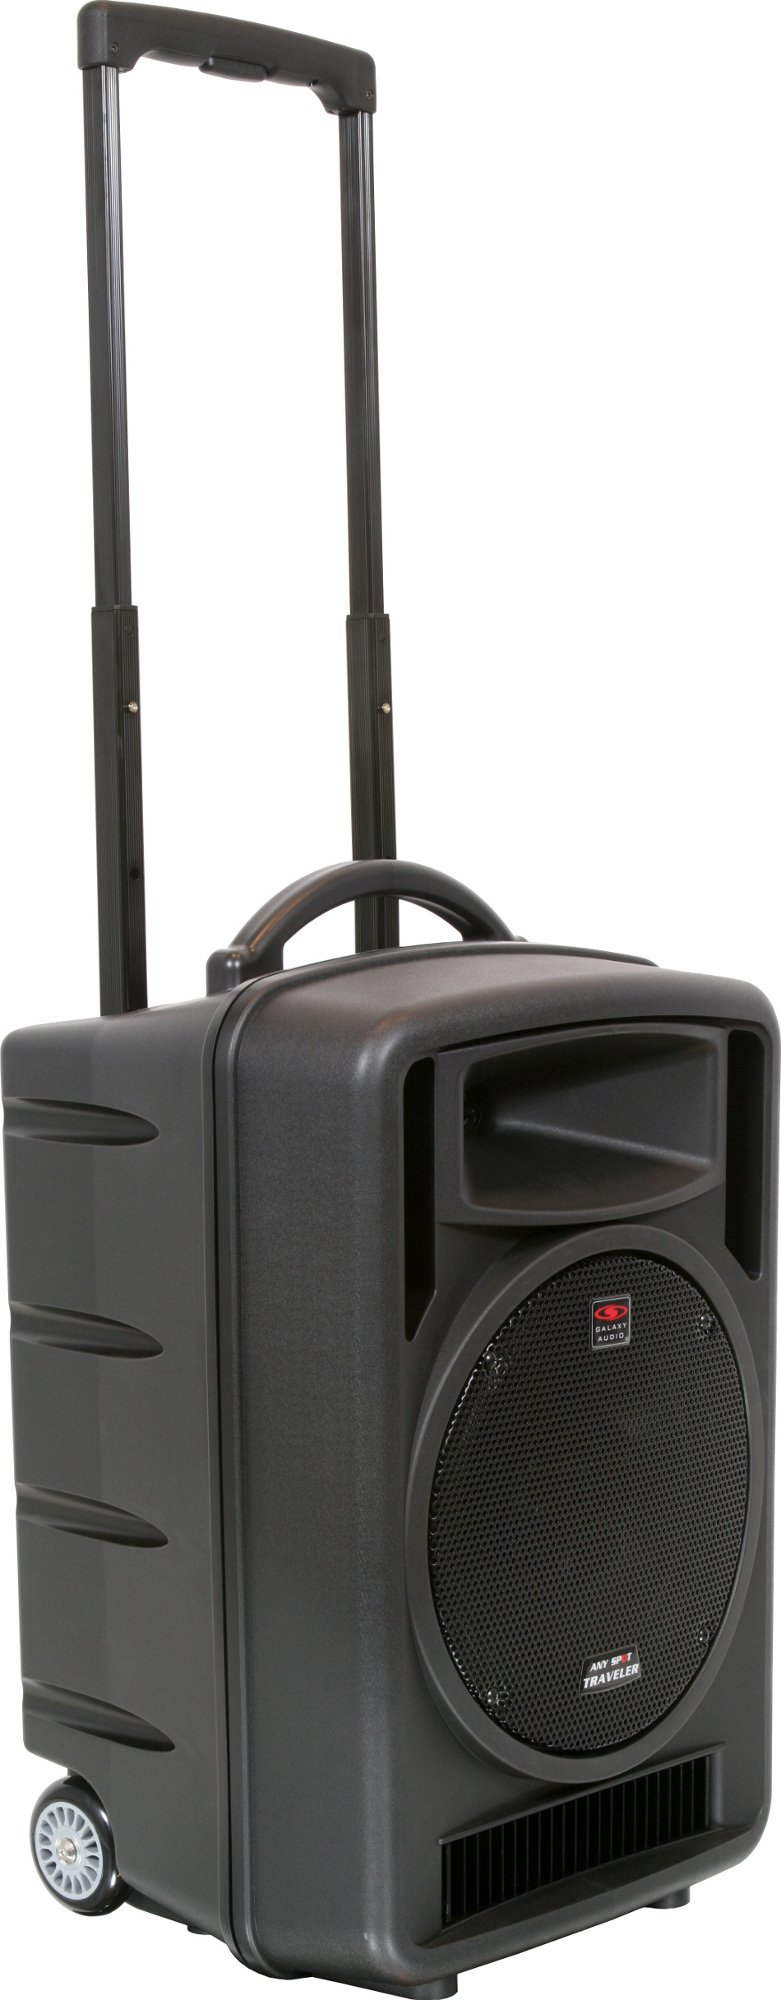 PA System,Traveler 10, w/ CD Player, Headset